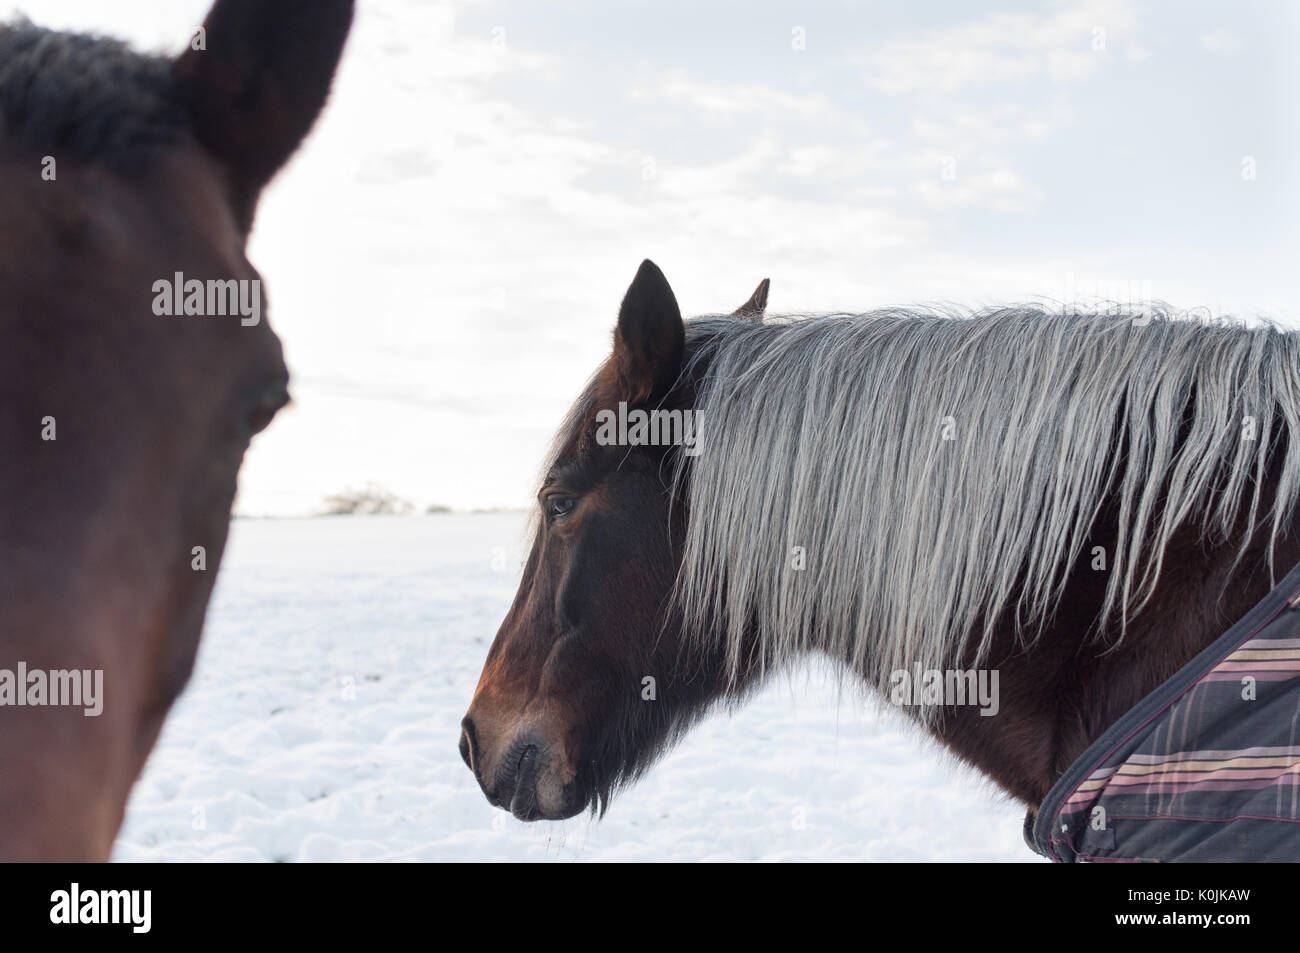 Two brown horses in a snowy field on a bright winter day. One of the horses has a grey mane and is wearing a blanket. Stock Photo